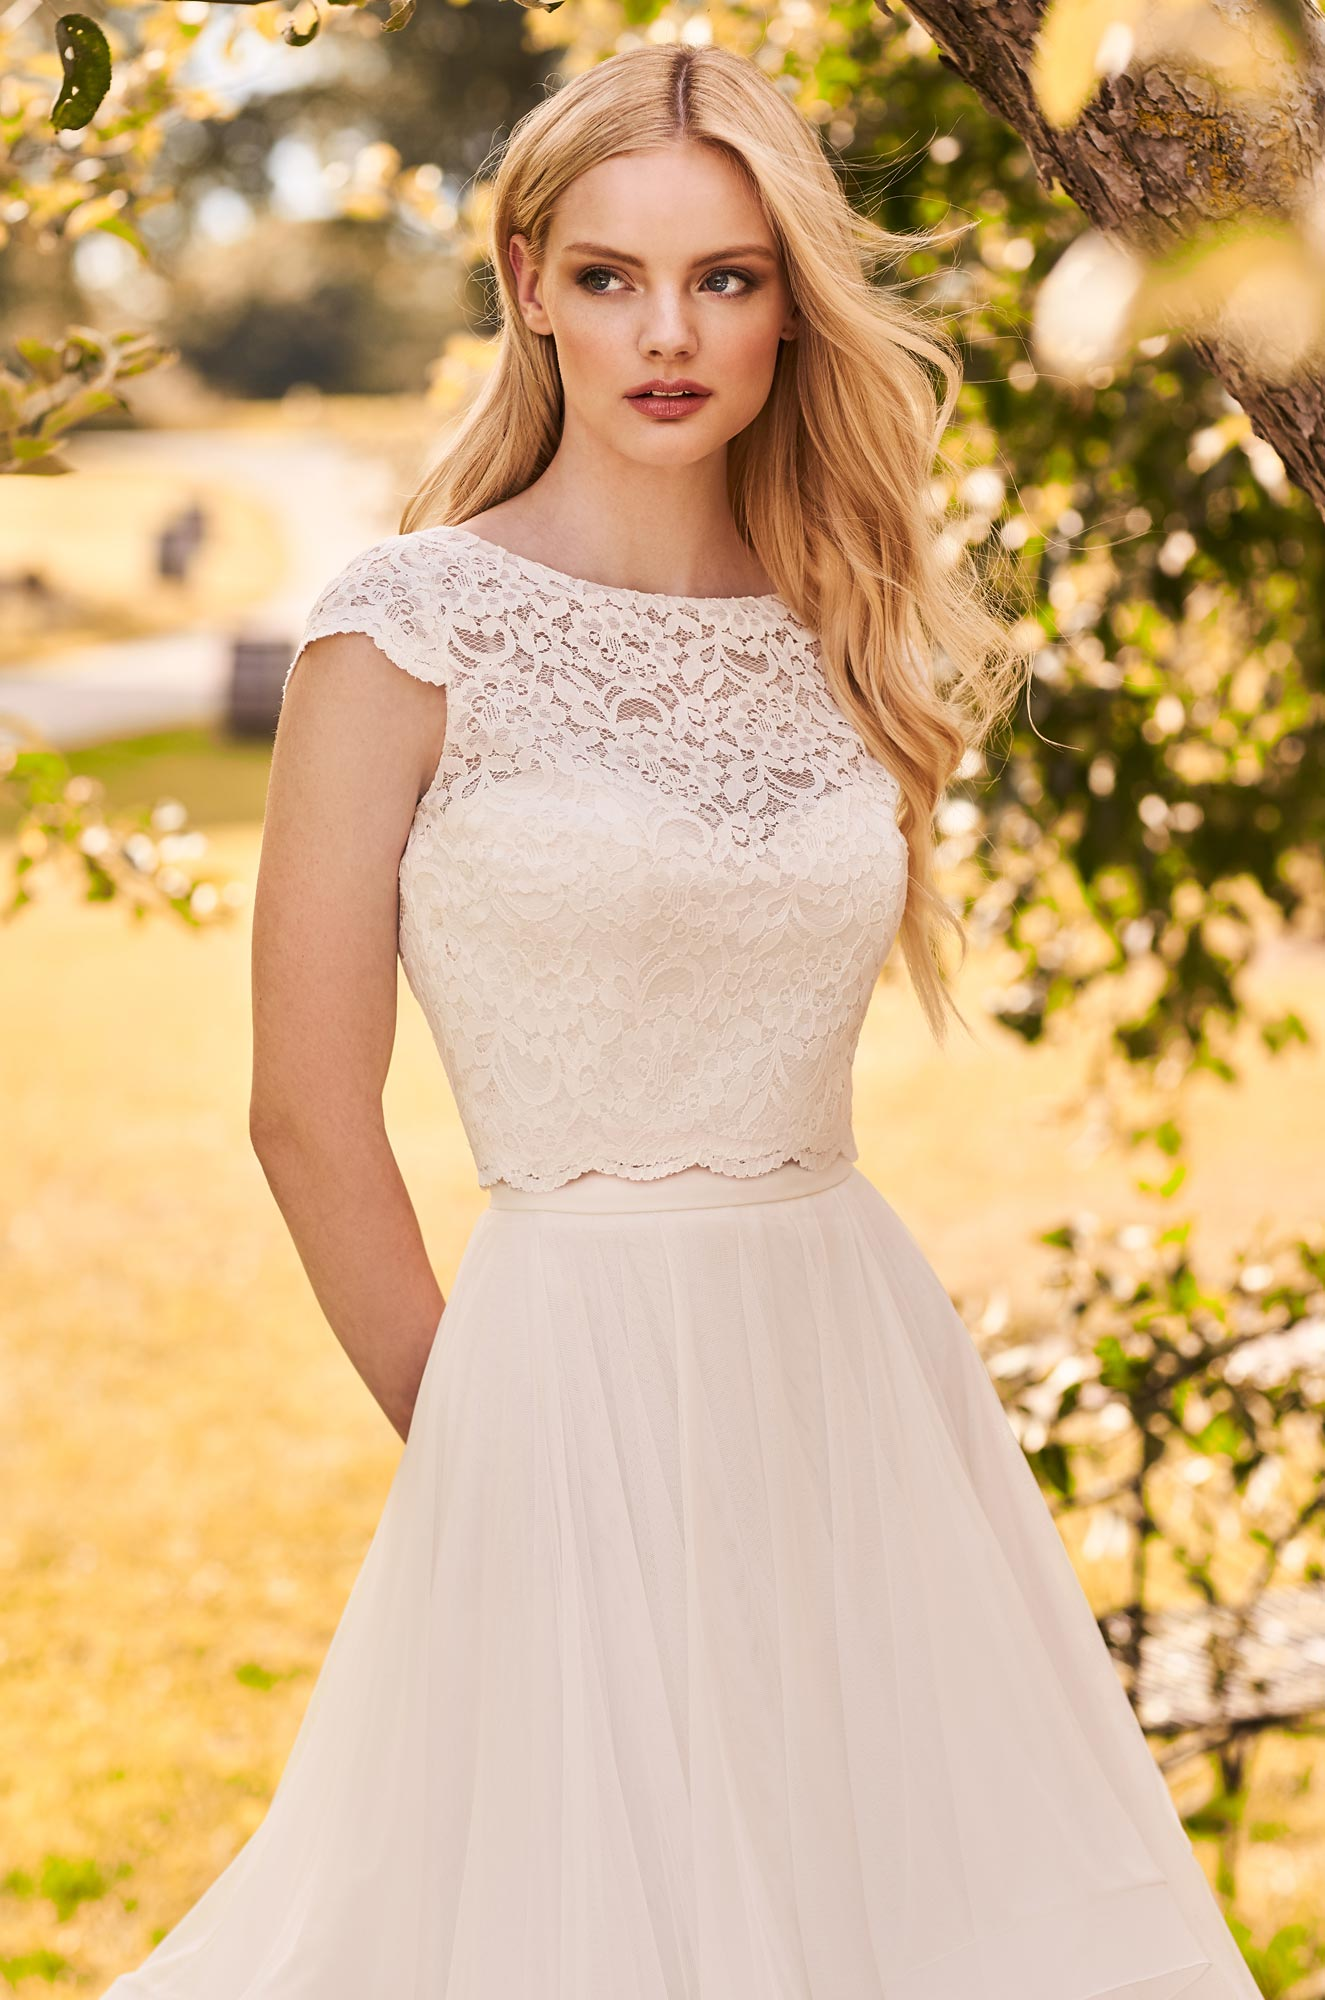 Chic Two Piece Wedding Dress – Style #2293 | Mikaella Bridal